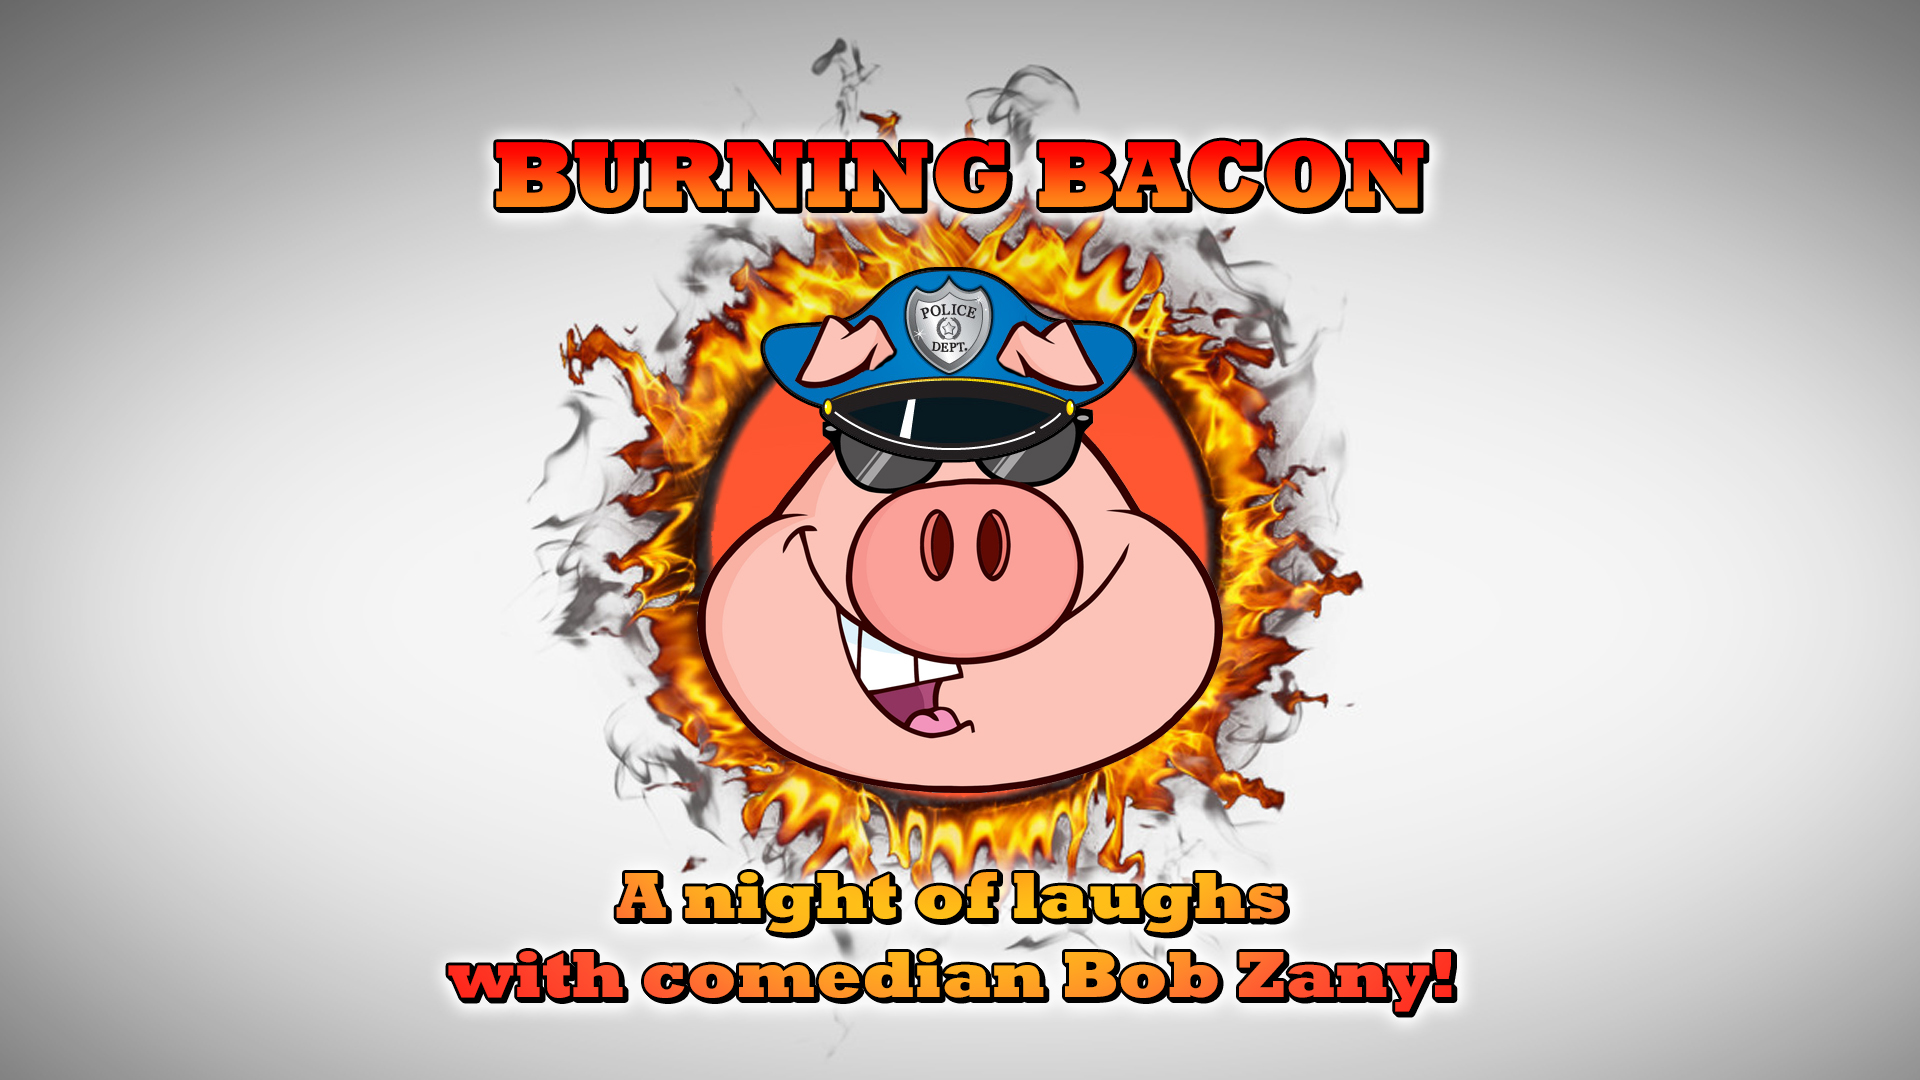 Burning Bacon- Thursday August 30th!